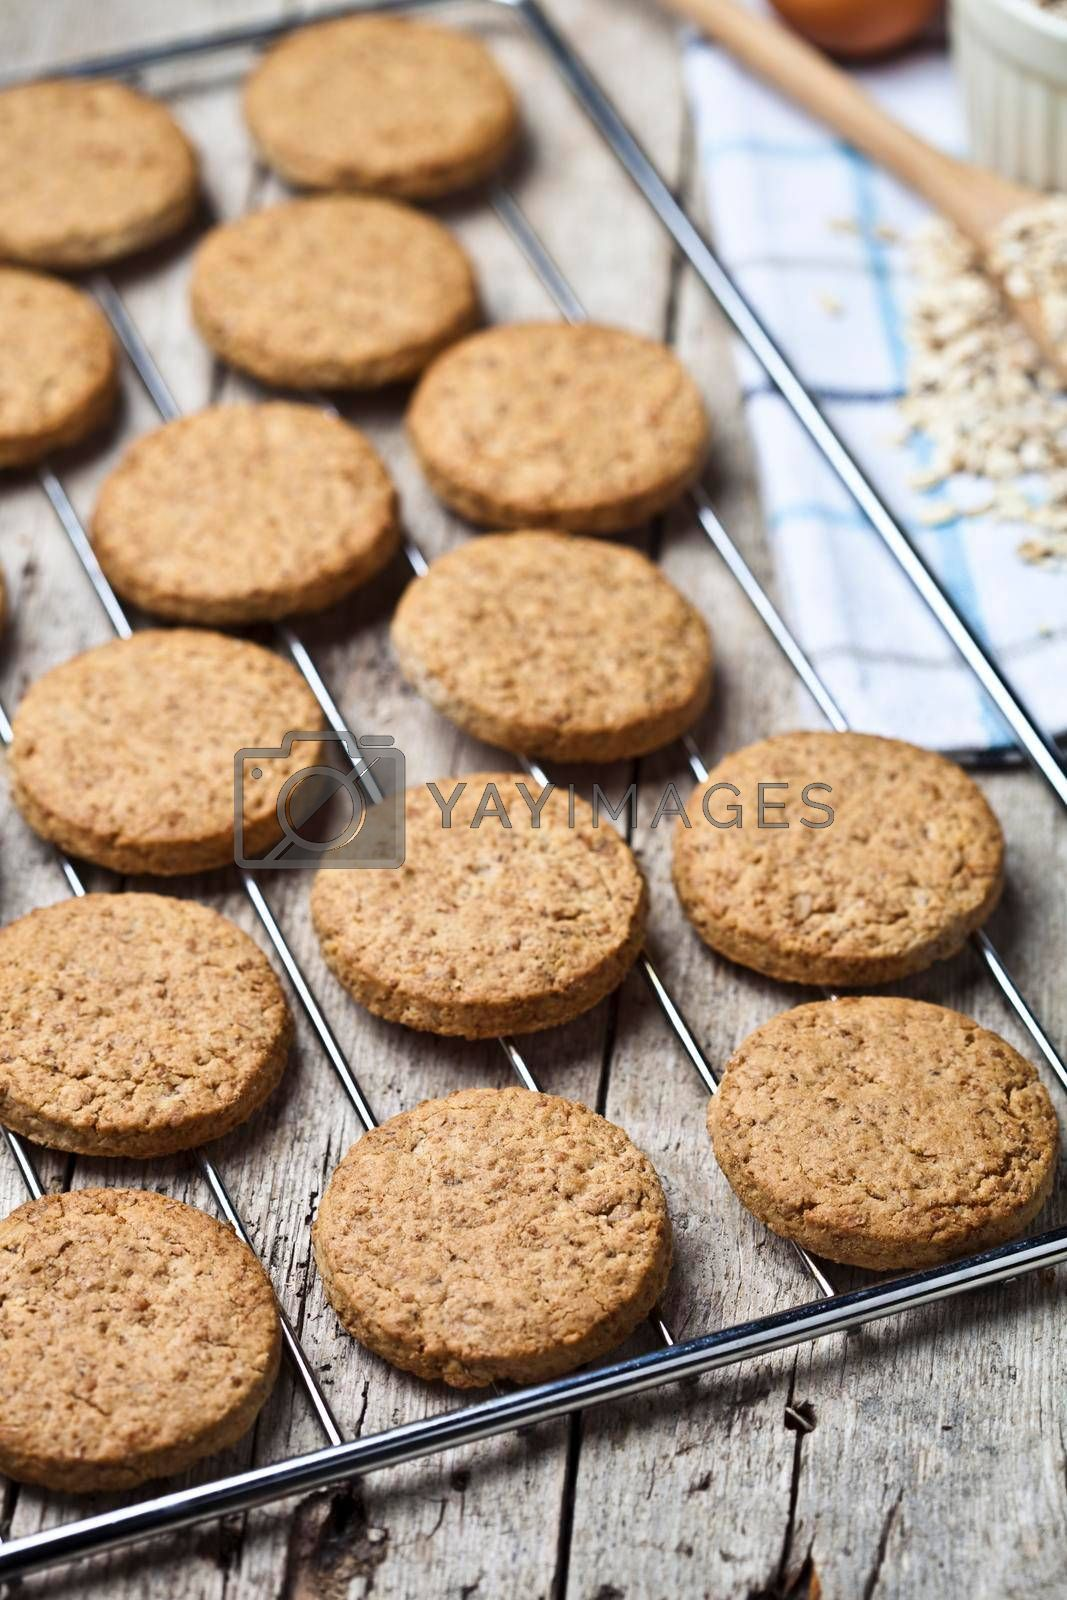 Baking grid with fresh oat cookies on rustic wooden table background and kitchen utensil closeup.